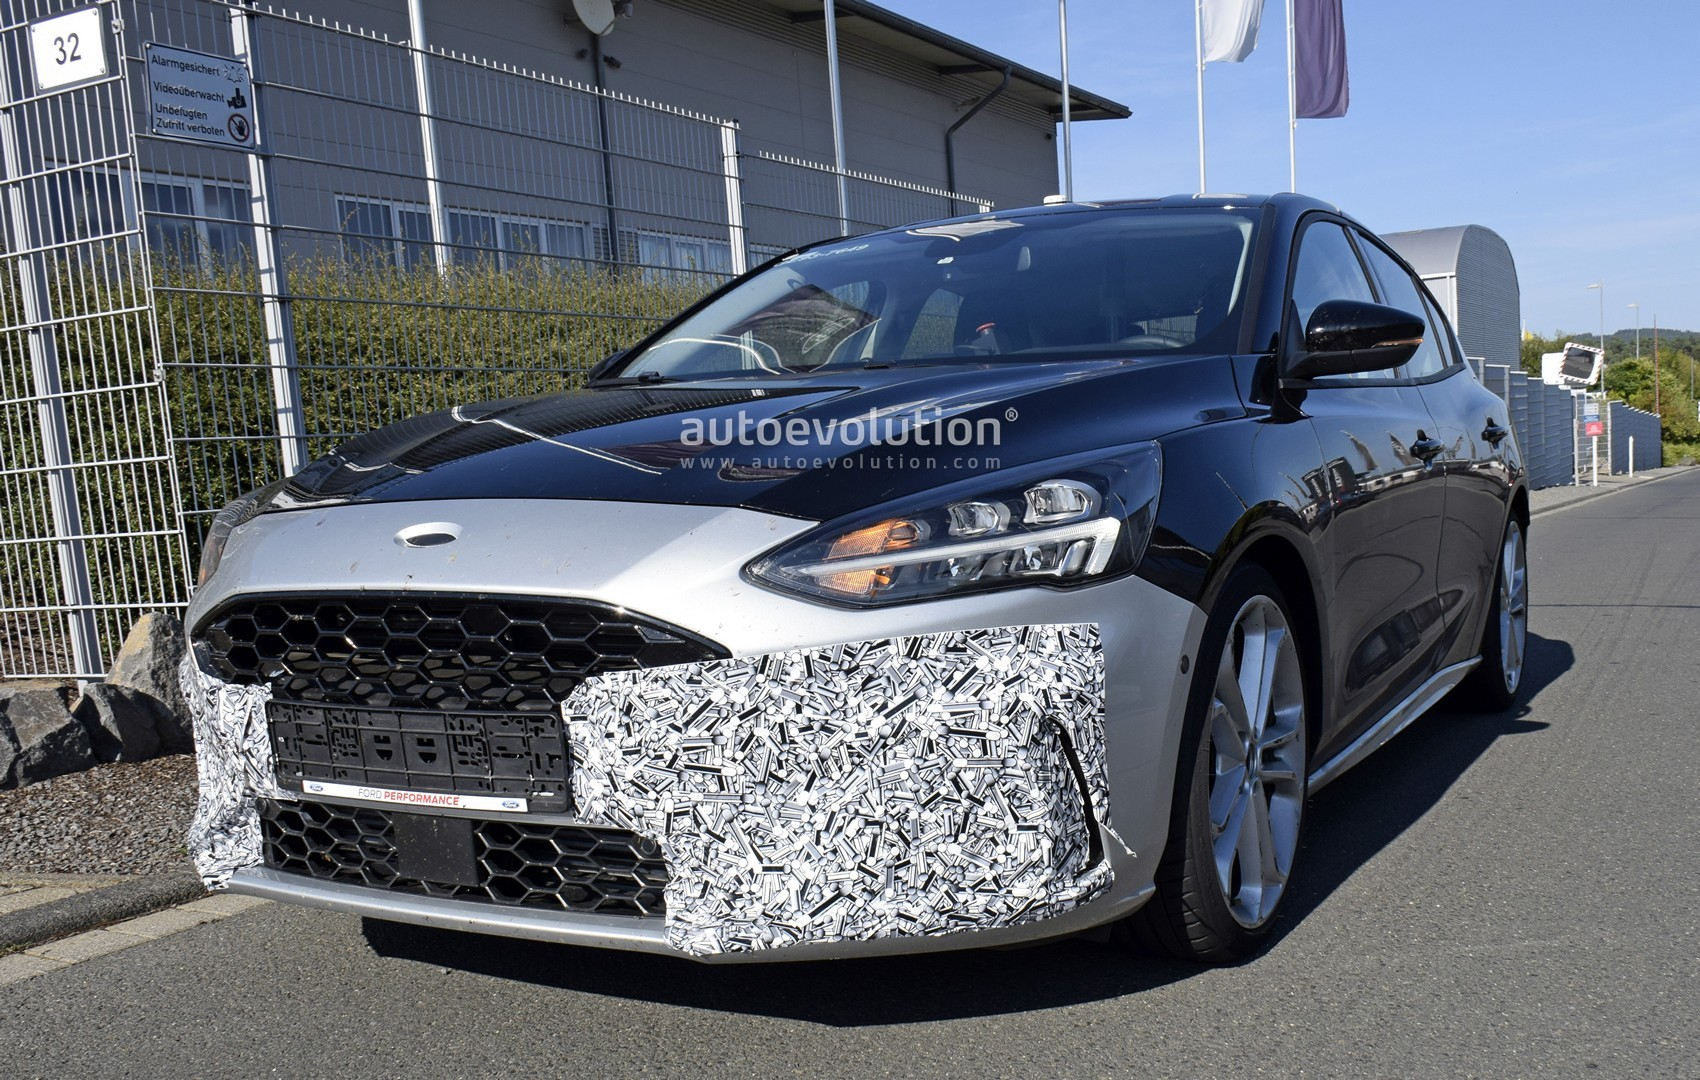 2020-ford-​focus-st-r​eveals-int​erior-in-l​atest-spys​hots_2